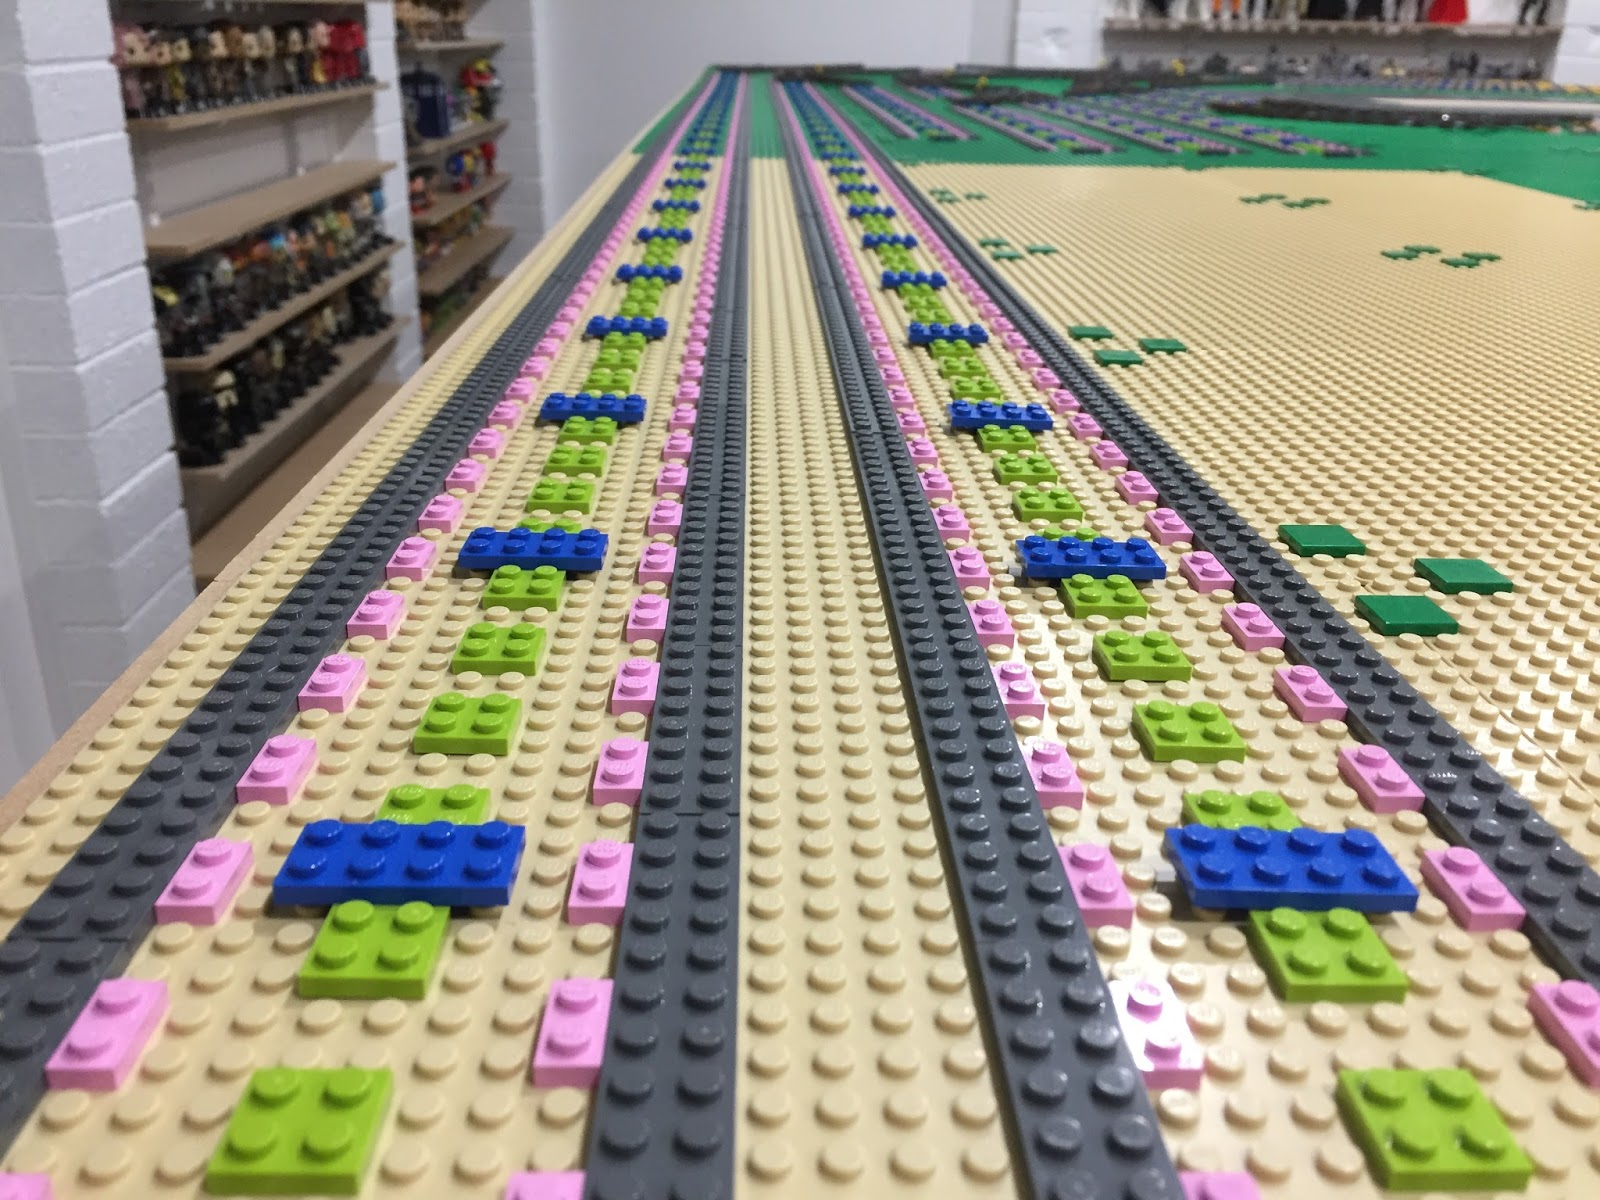 Benny S Bricks Bricks Bricks Lego Fan Blog Benny S Lego City Update 2 Train Track Ballast